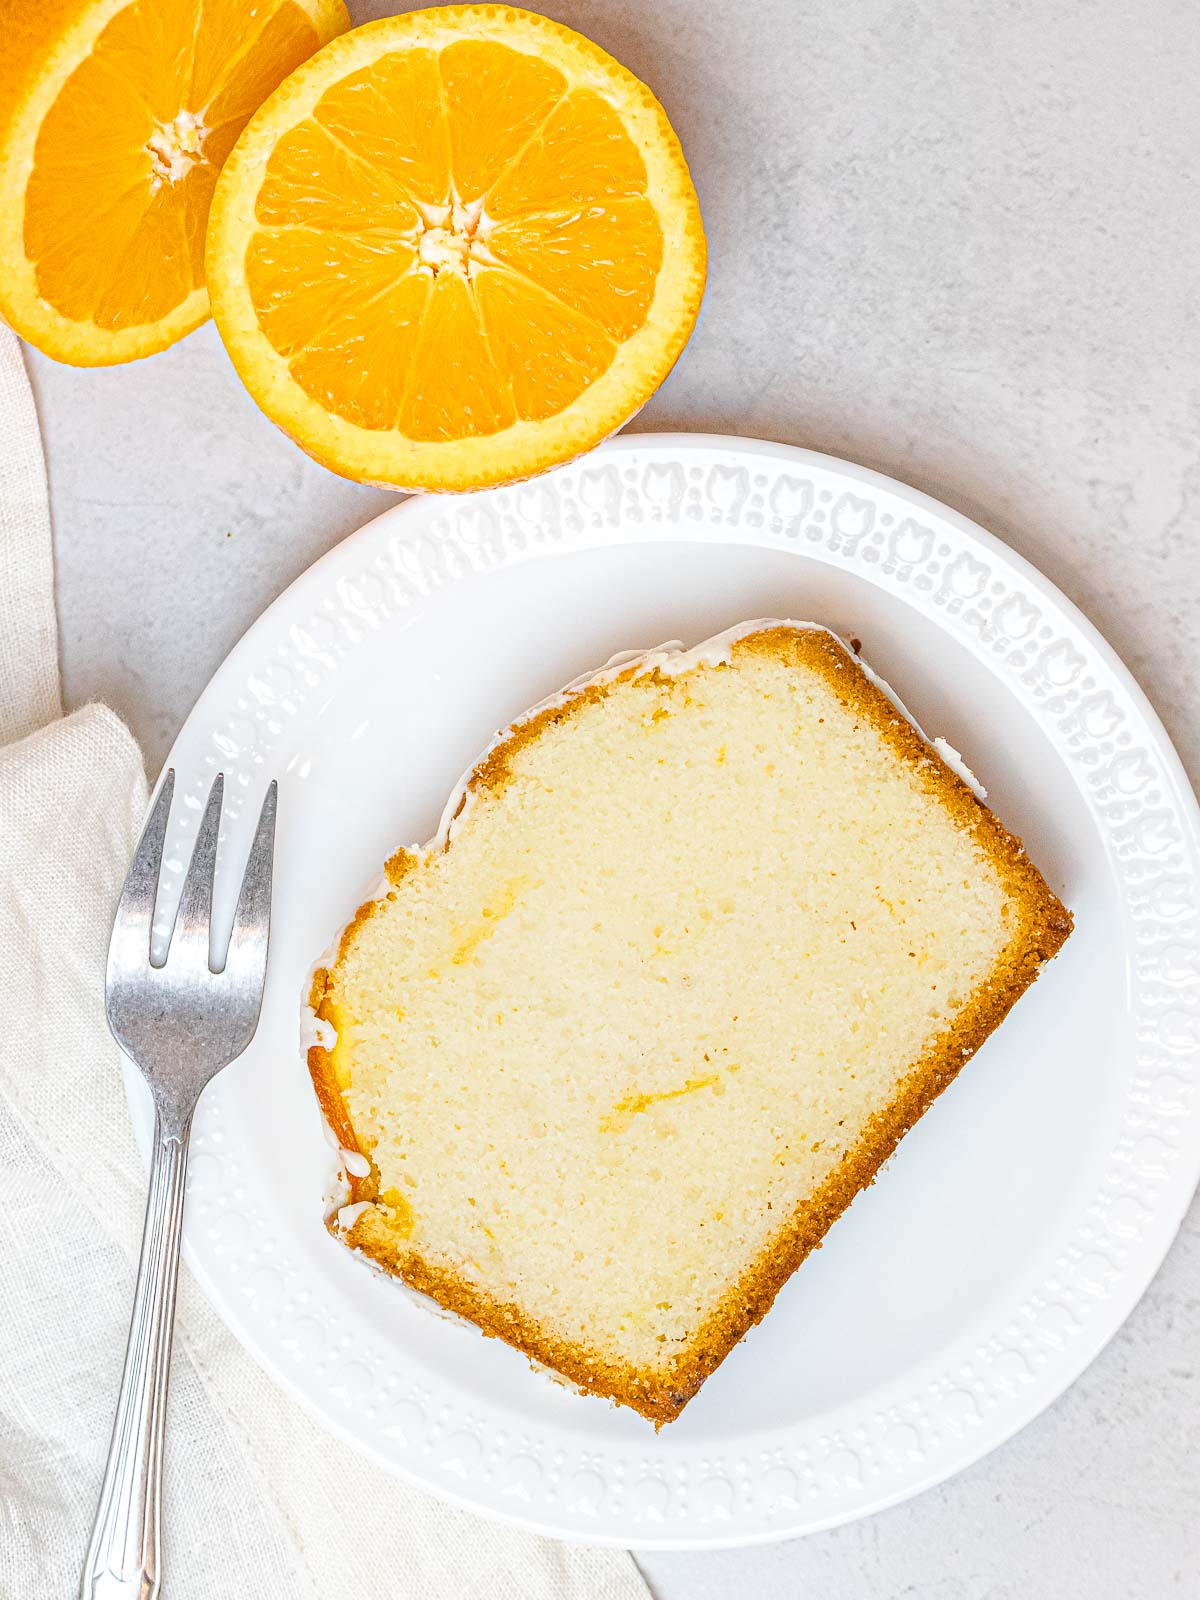 a slice of orange pound cake on a white plate with a fork next to oranges